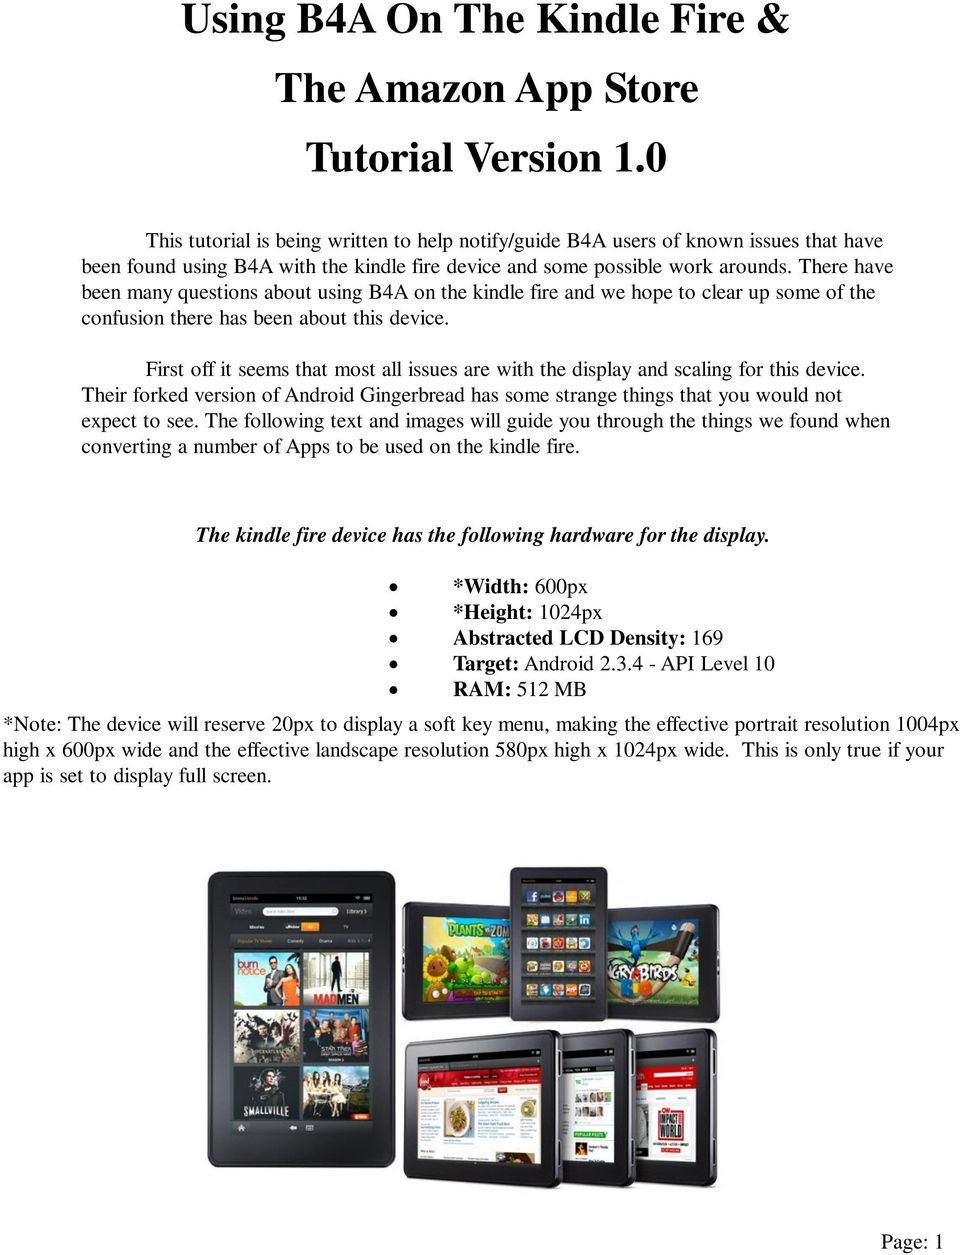 There have been many questions about using B4A on the kindle fire and we hope to clear up some of the confusion there has been about this device.